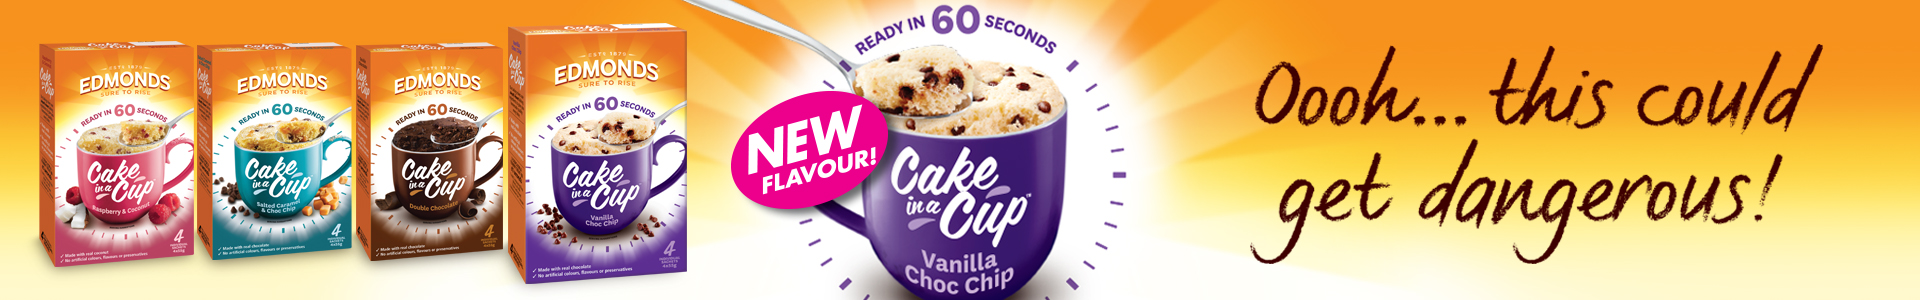 /news/new-vanilla-choc-chip-cake-in-a-cup/